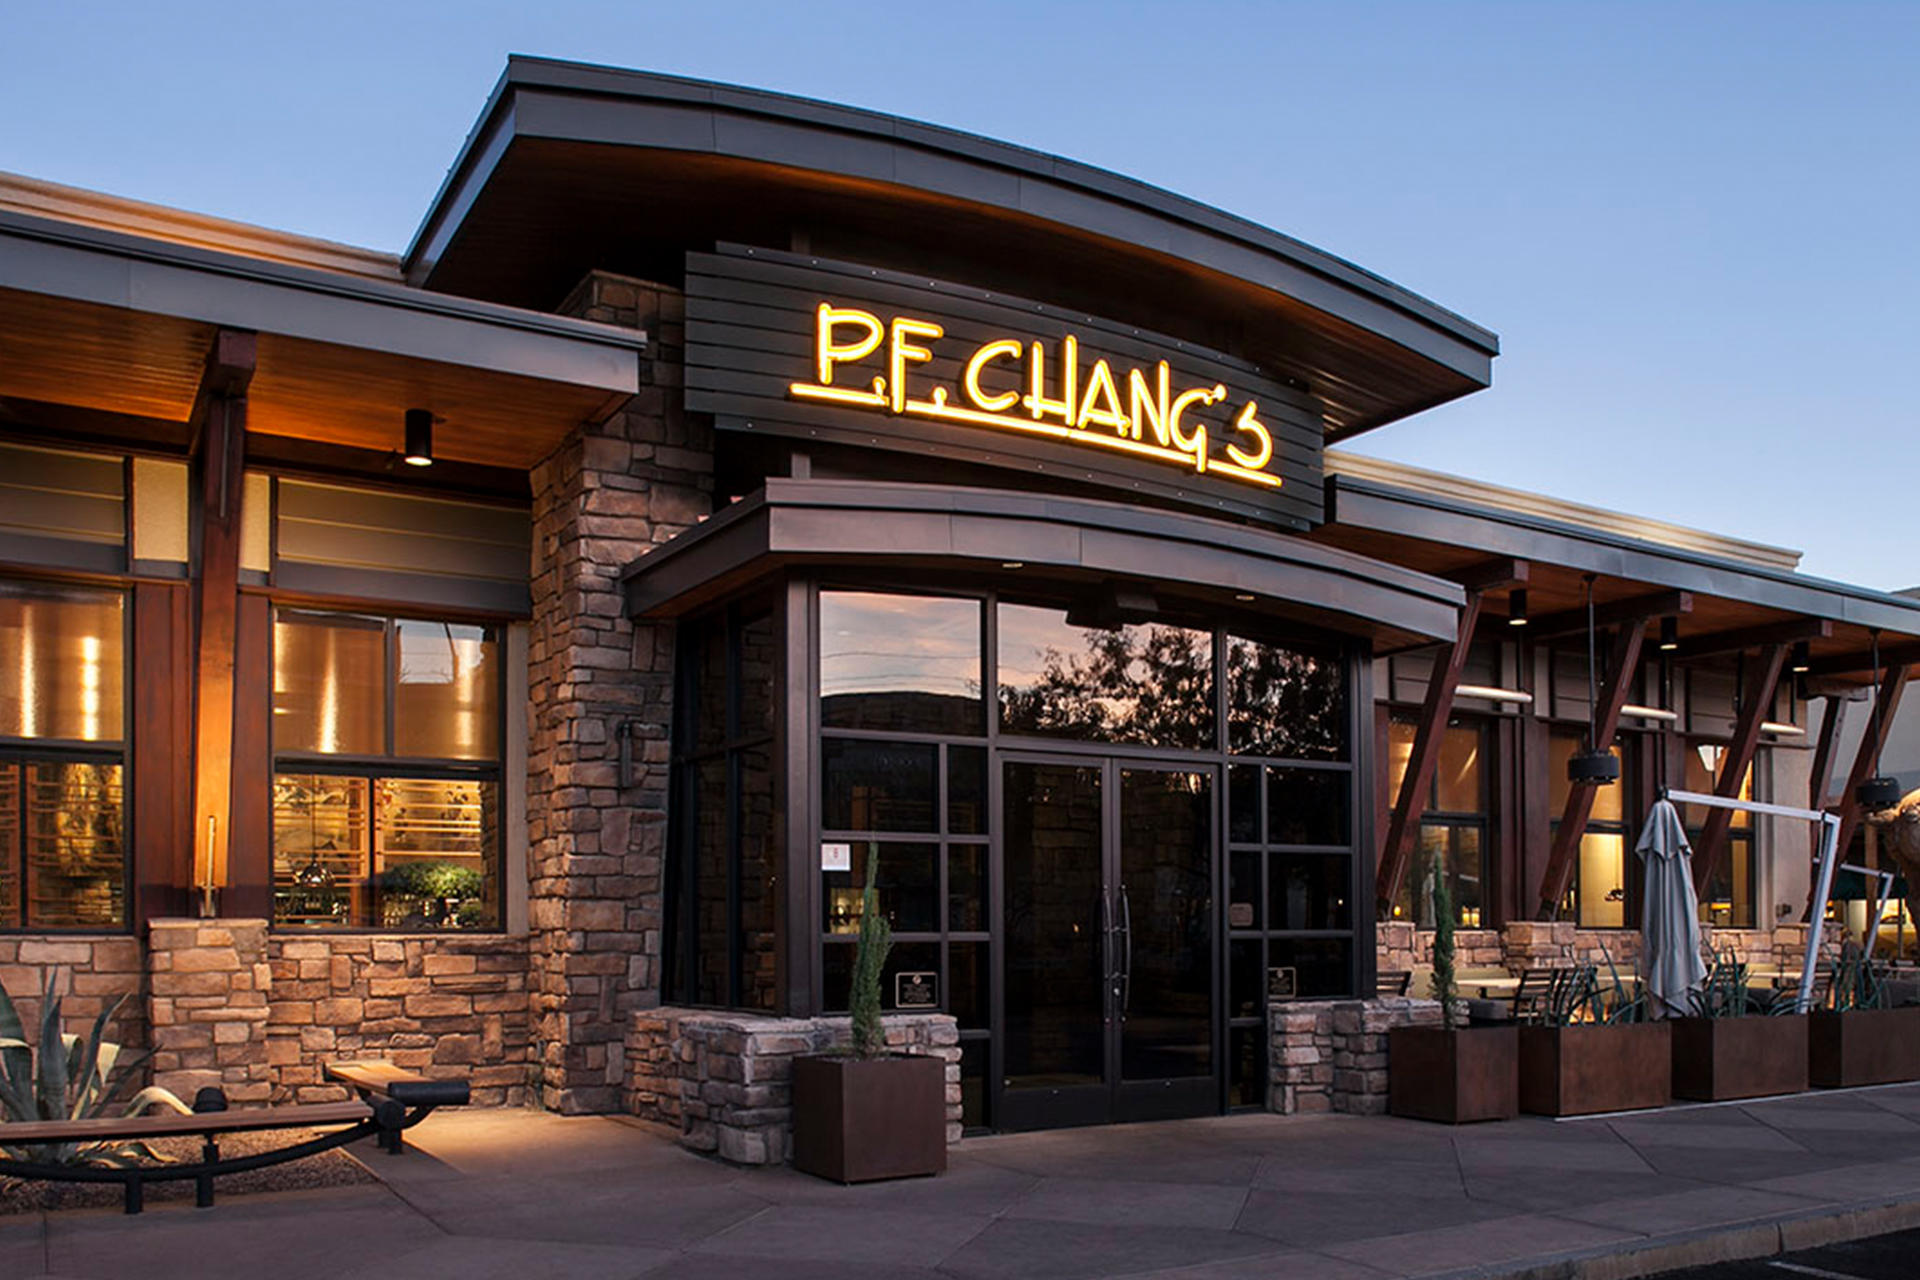 photograph about Pf Changs Printable Menu called P.F. Changs inside of 7132 E Greenway Pkwy. Scottsdale, AZ Asian